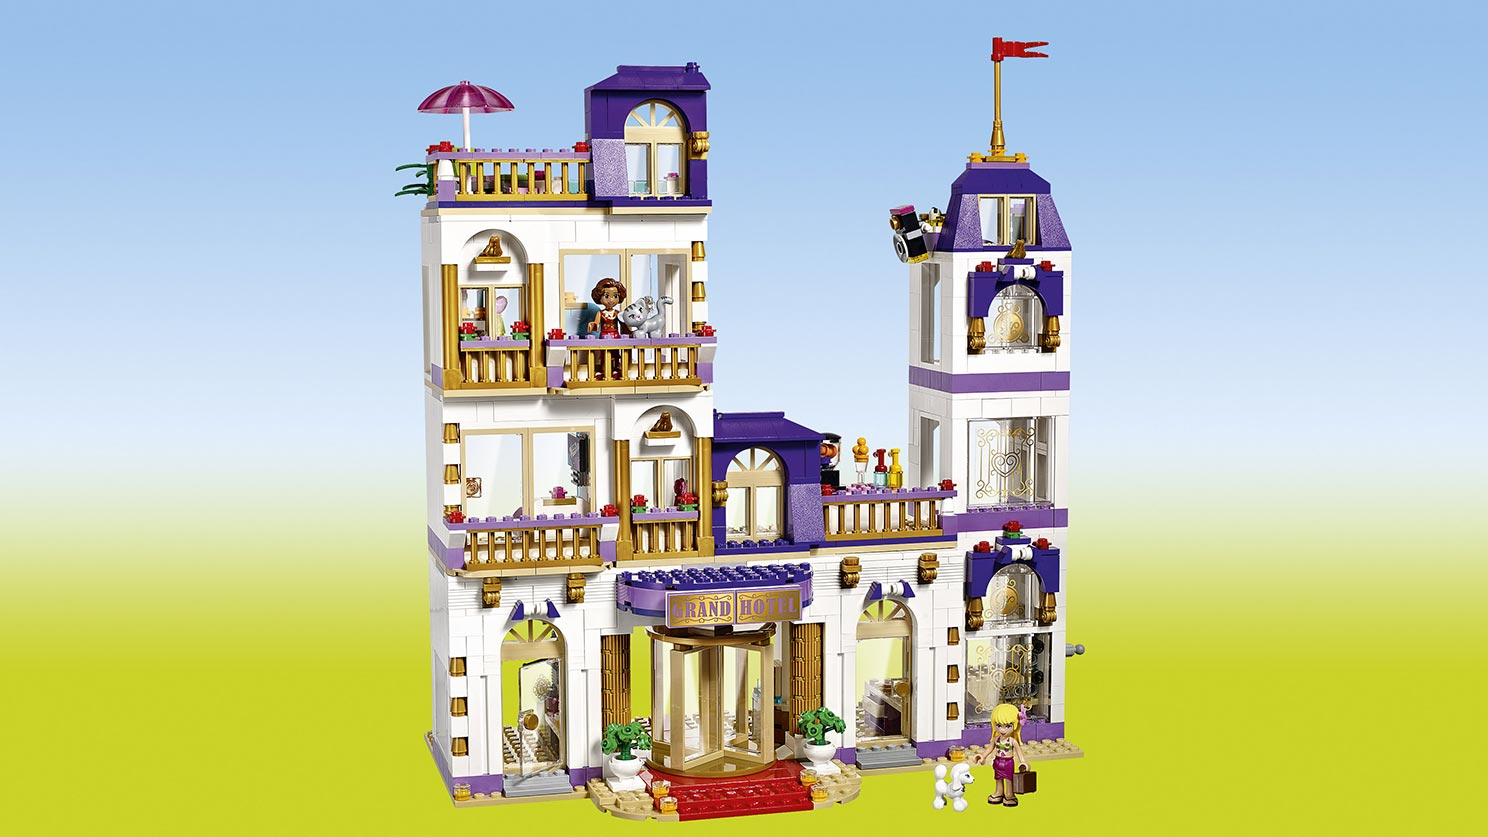 Lego friends grand hotel w heartlake 41101 cena opinie for Olivia s garden pool instructions